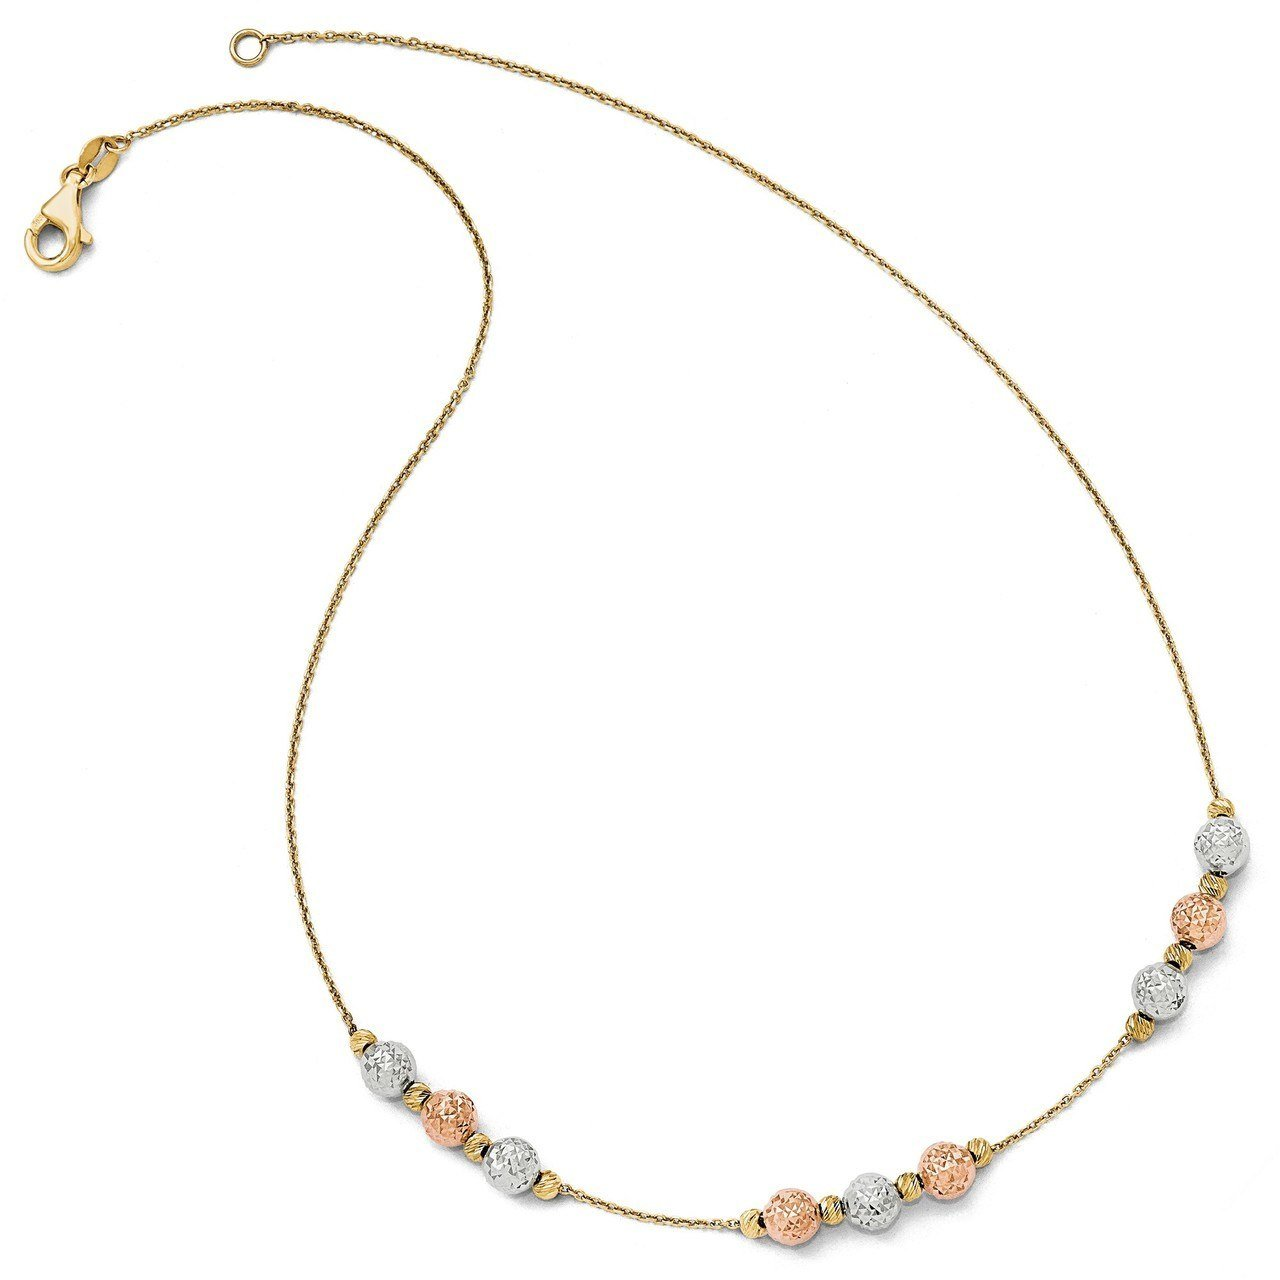 Lex & Lu Leslie's 14k Tri Colored D/C Beaded Necklace-Prime